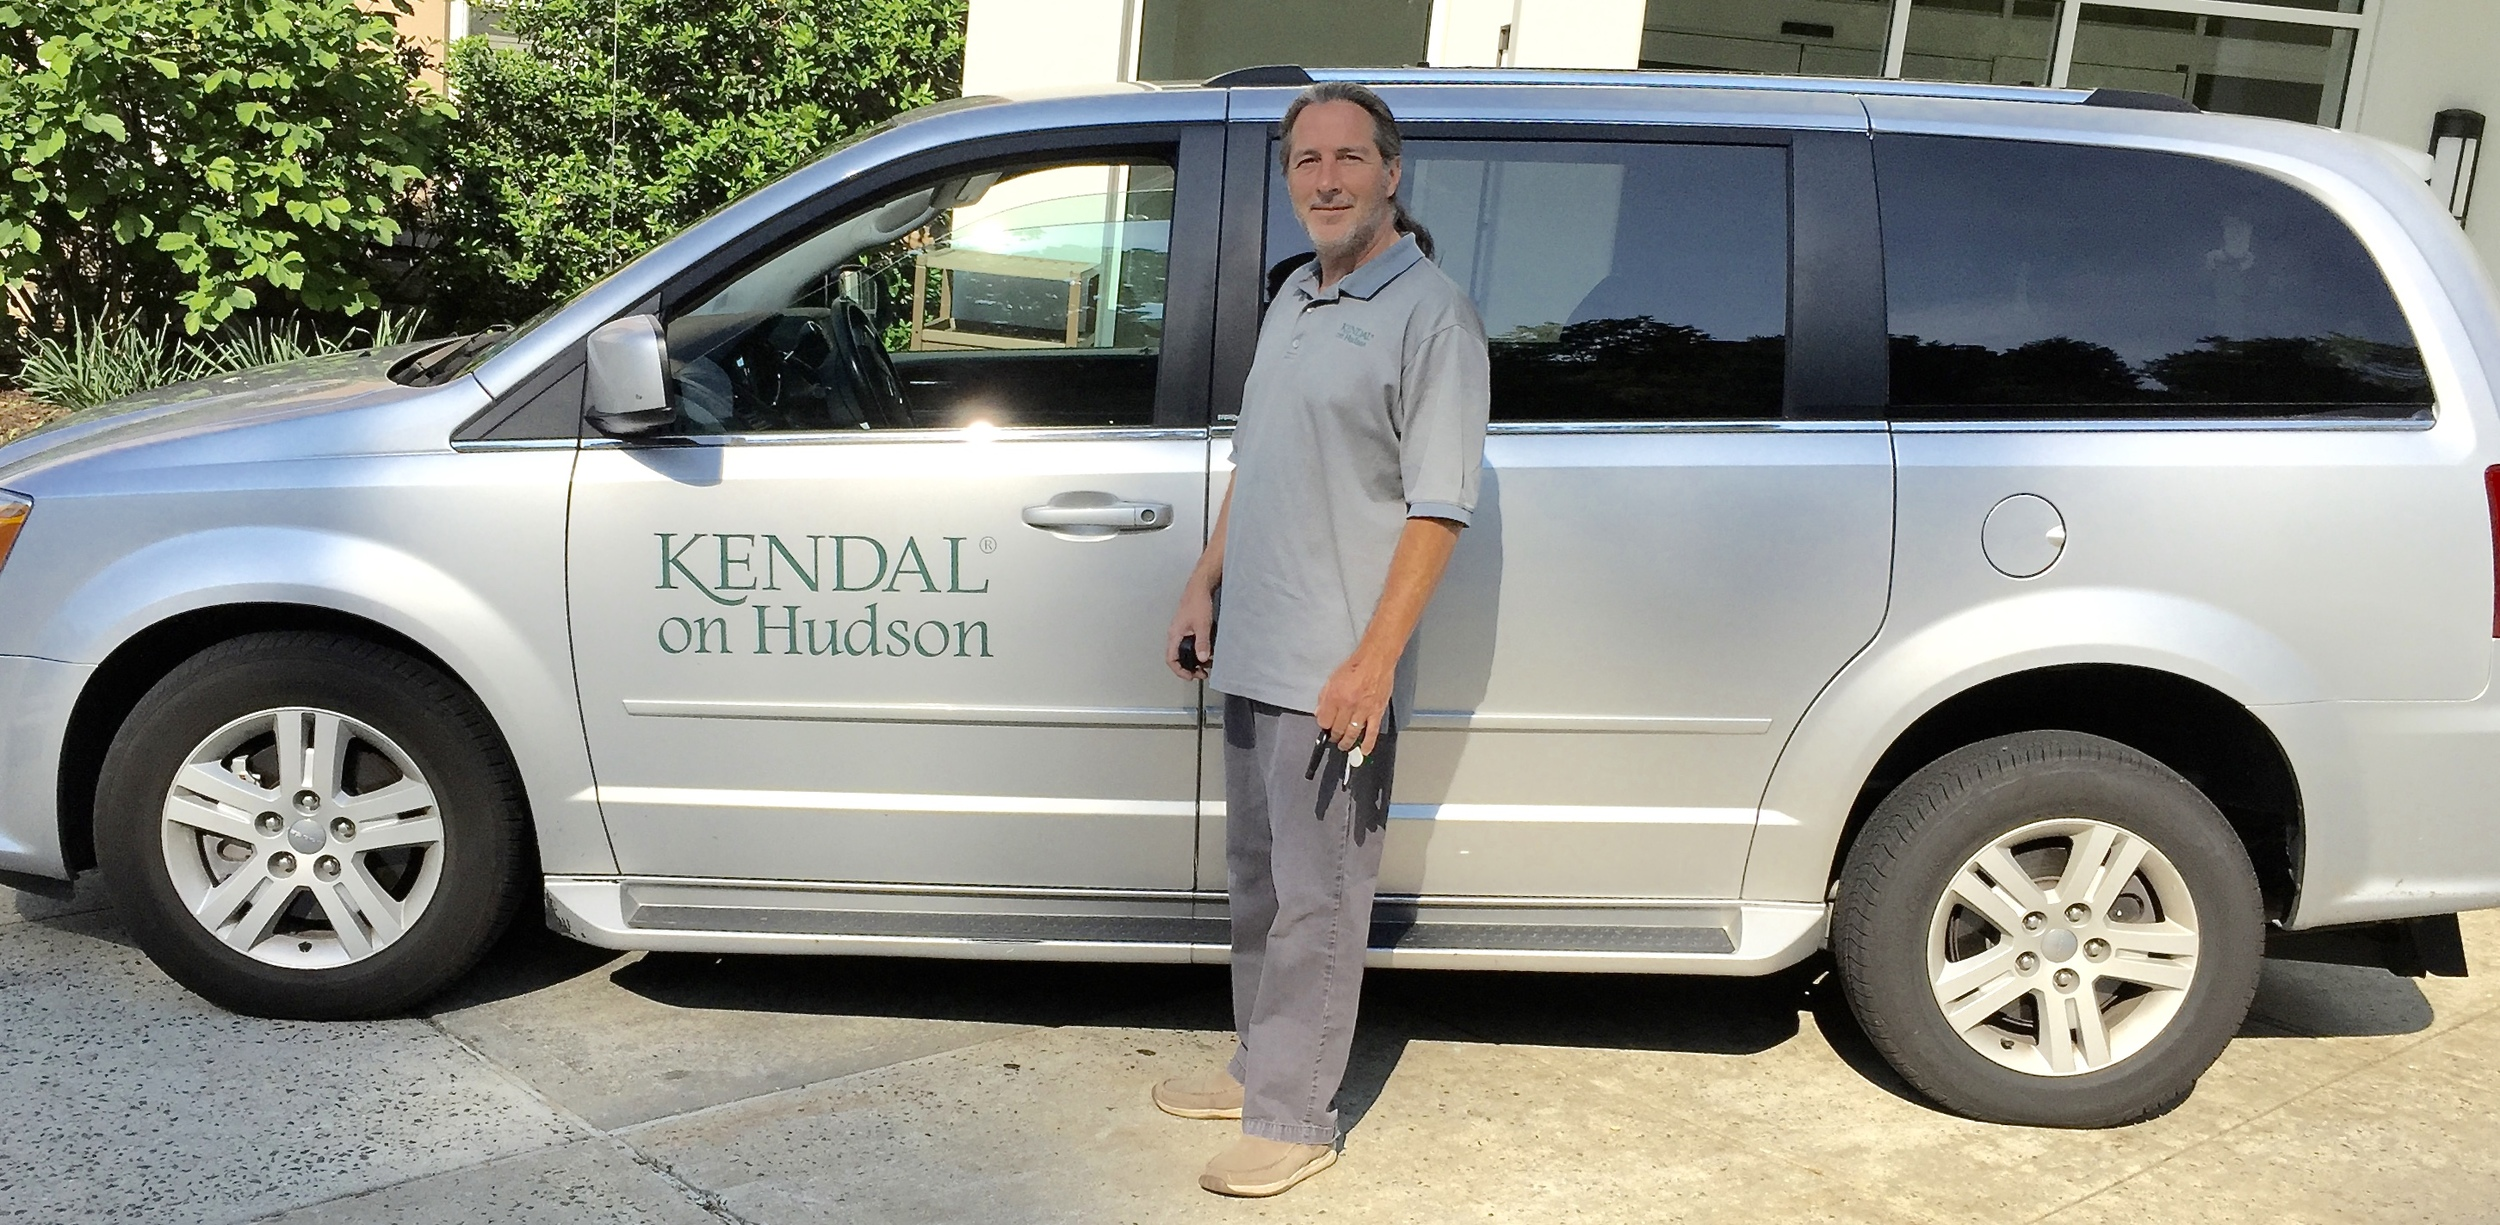 Rich Shields, Kendal's driver since 2005, with one of the vans.